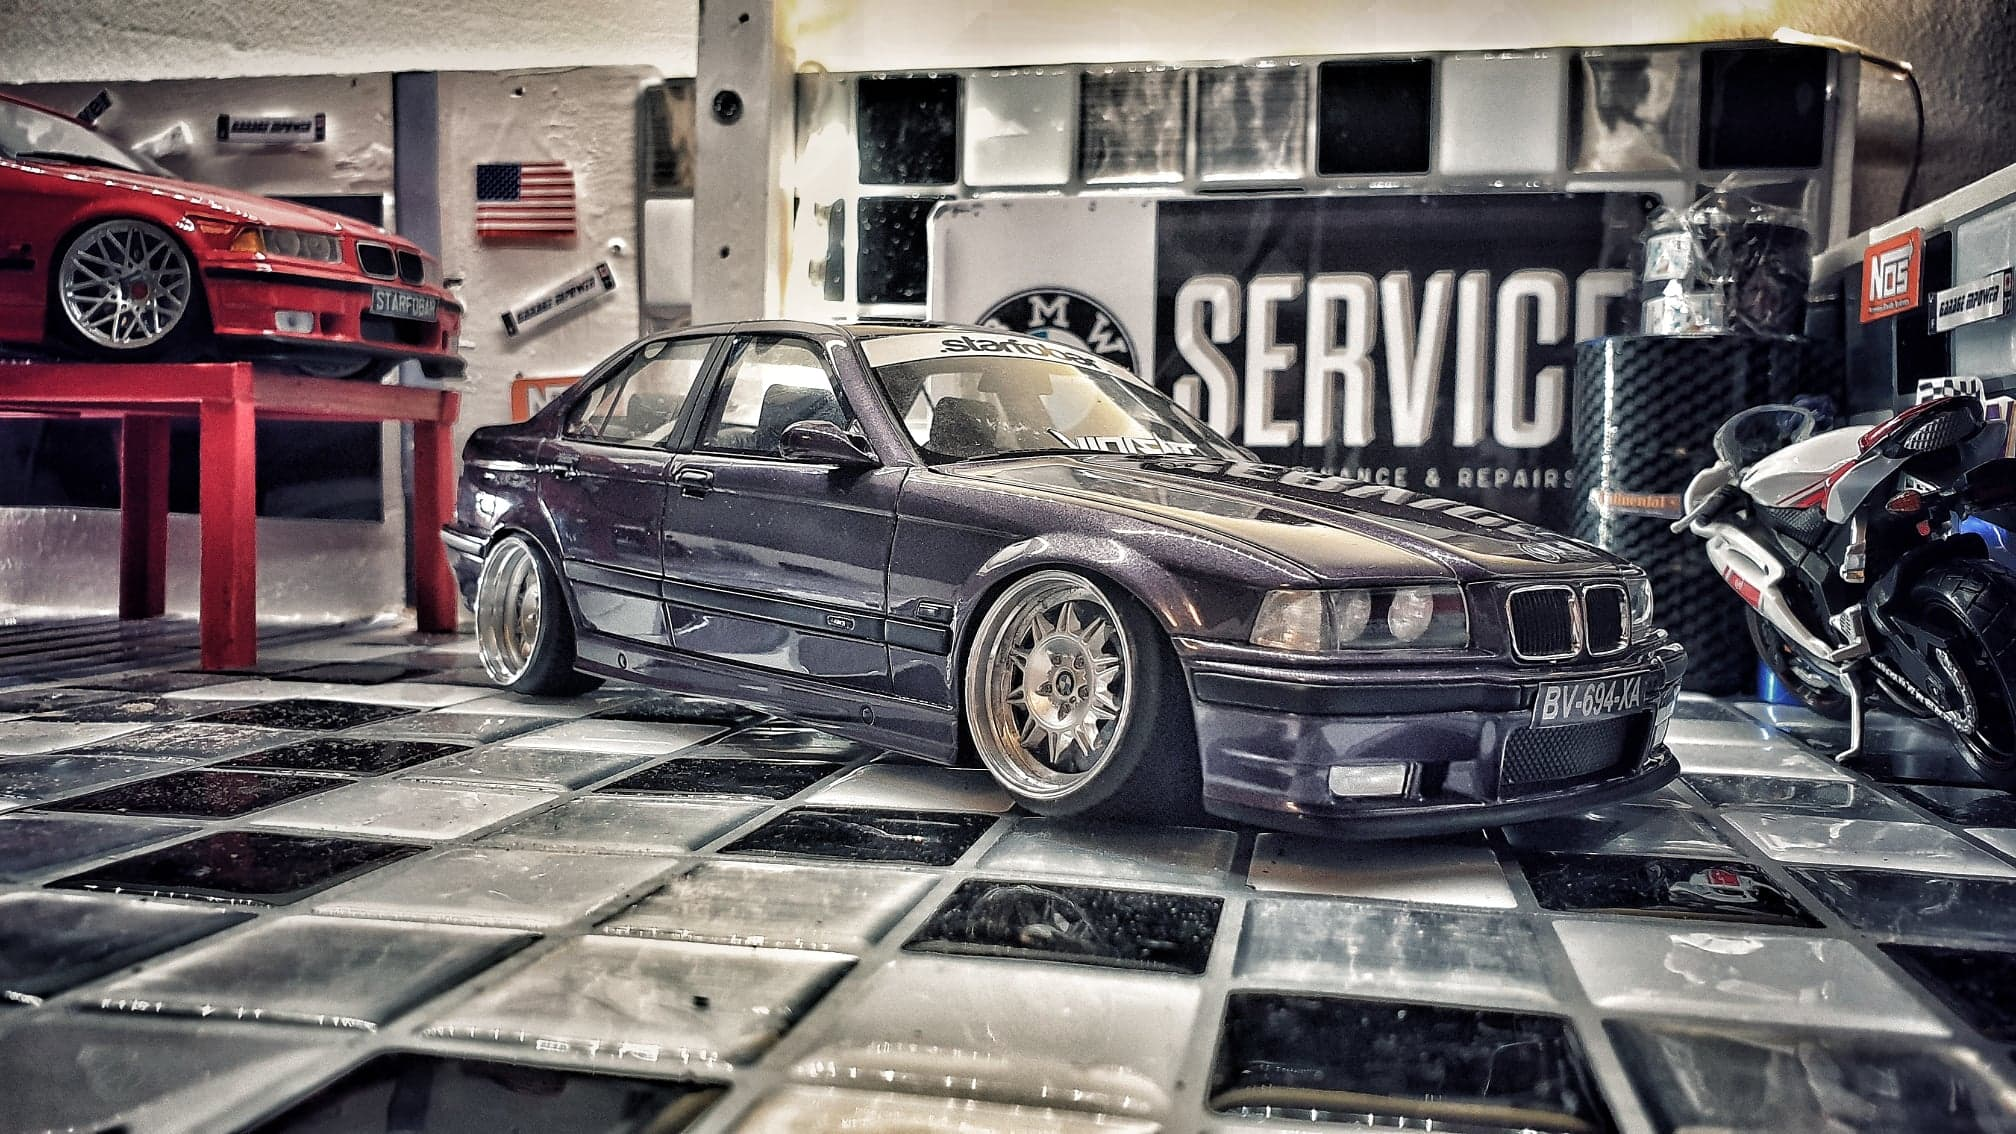 Bmw M3 E36 1/18 Ottomobile berline violette avec jantes a bord large tuning miniature